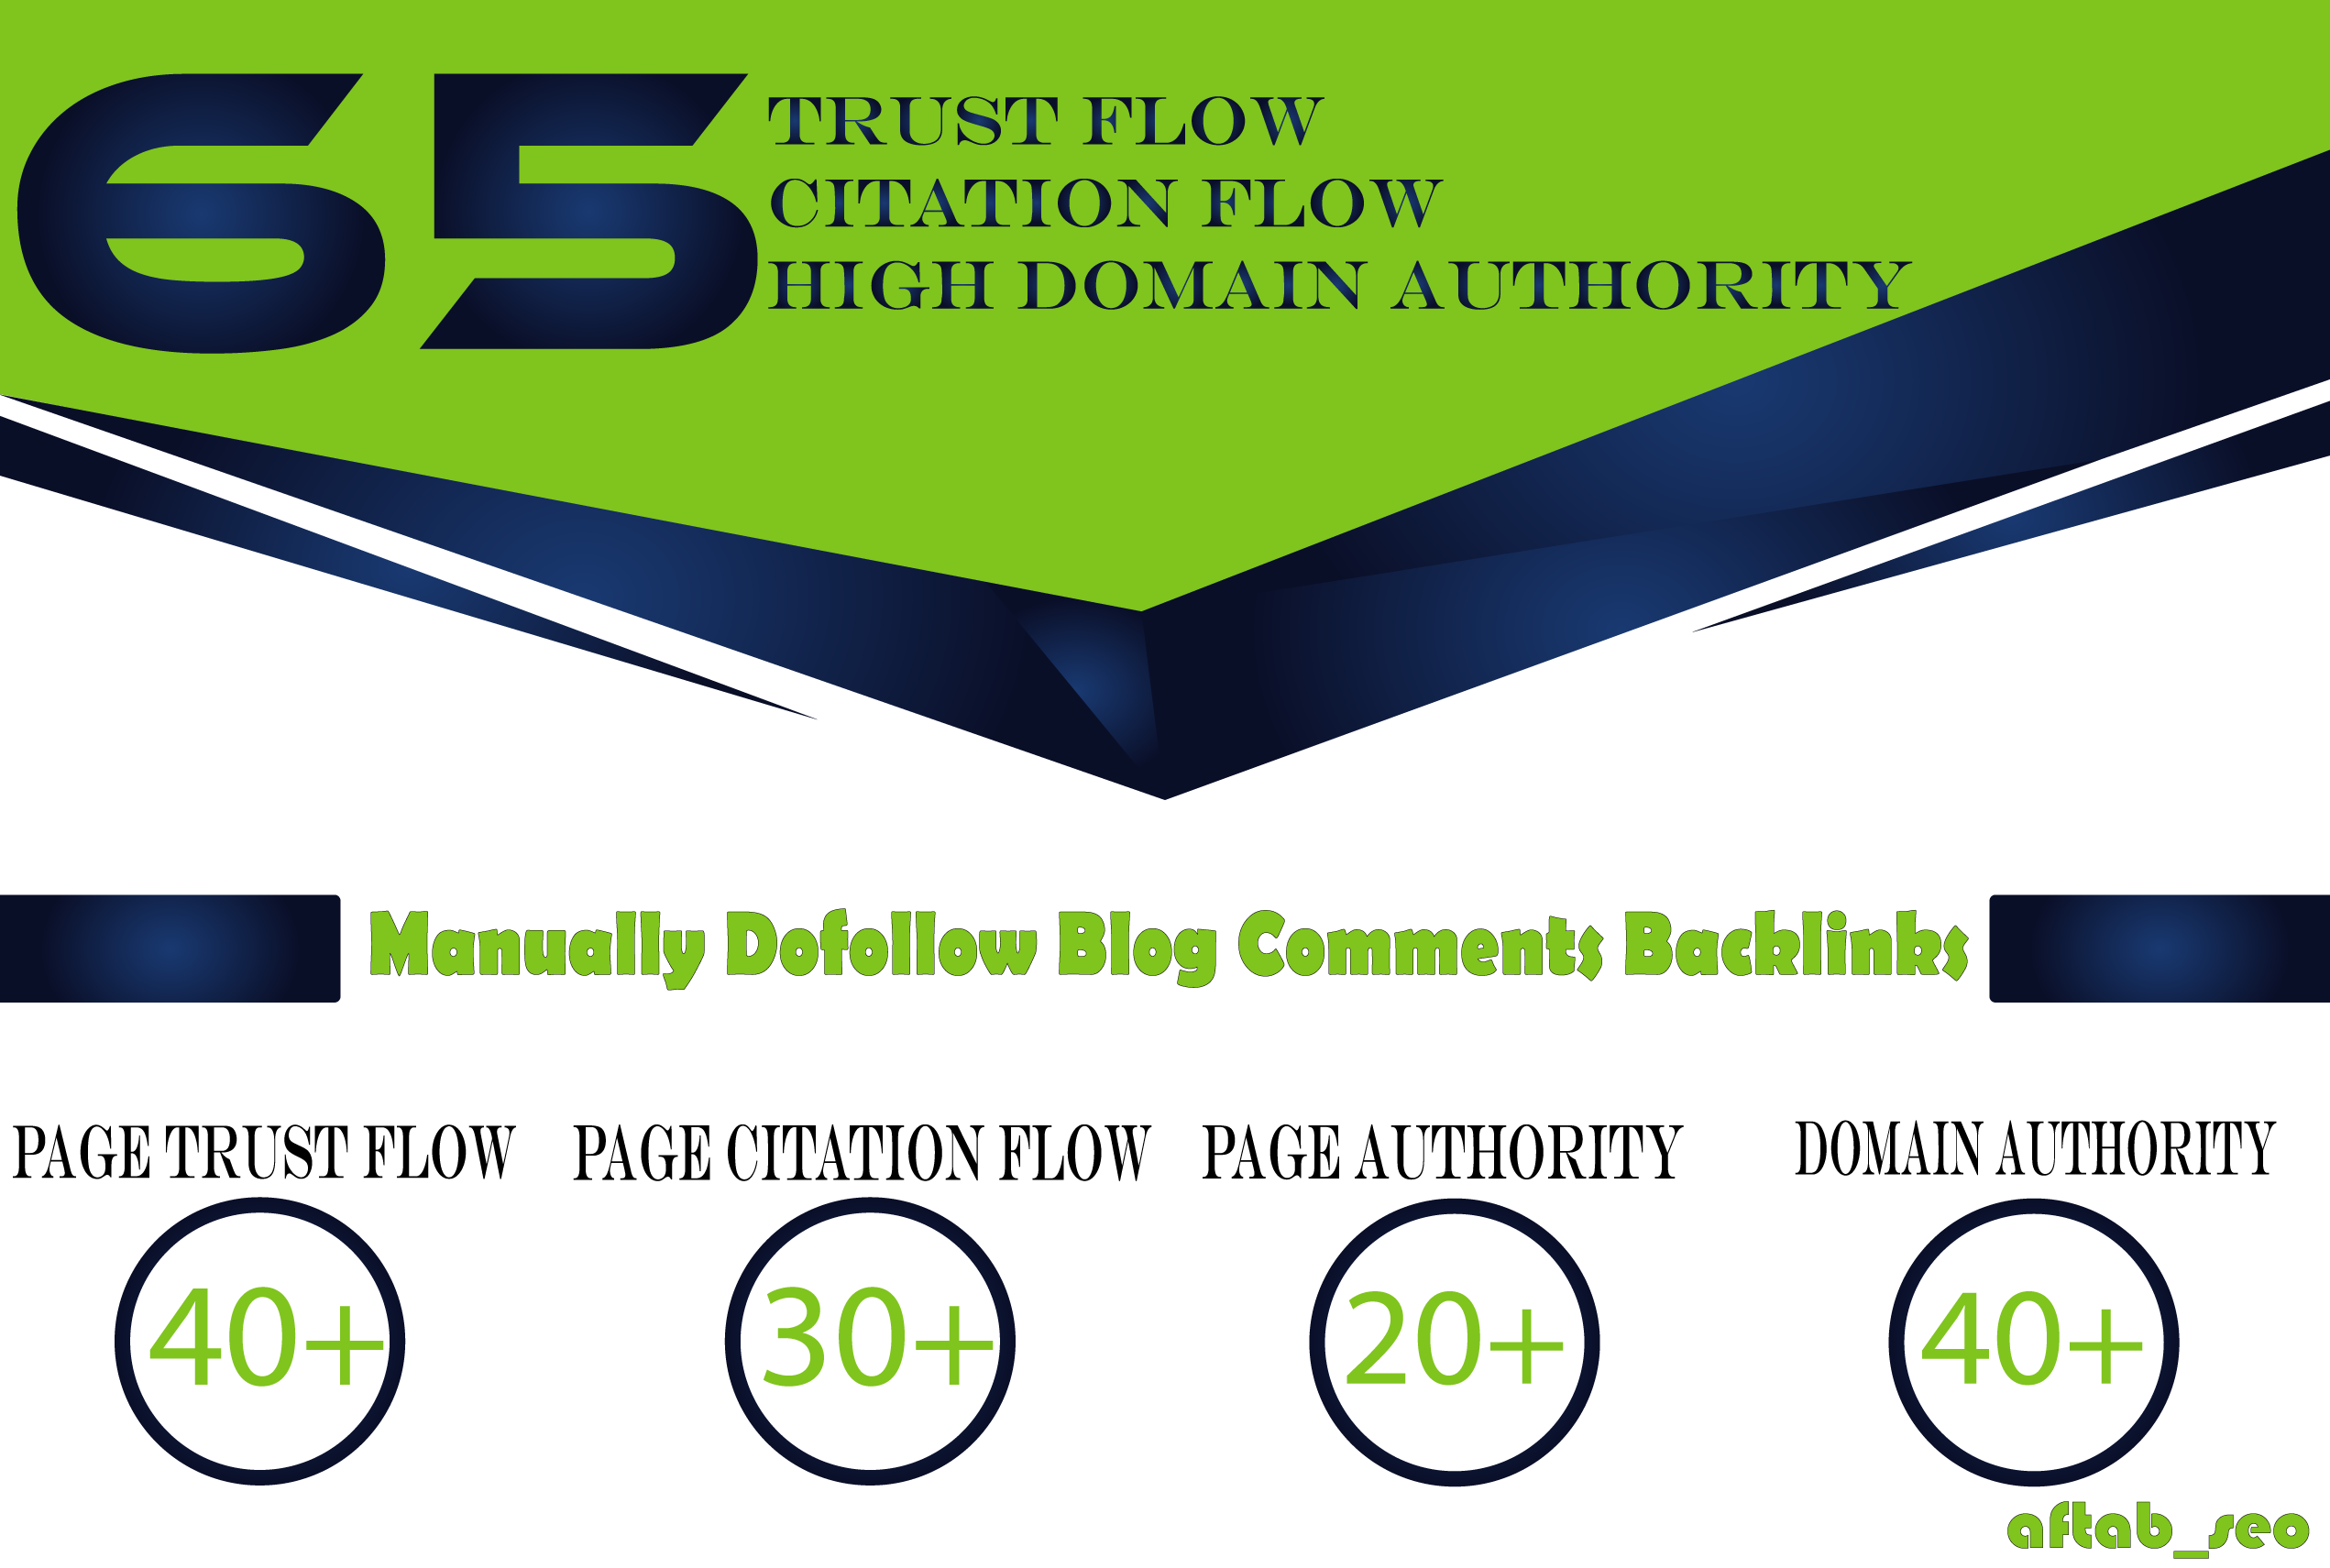 Manually 65 Dofollow Blog comment Trust Flow Citation Flow High Domain Authority Backlinks